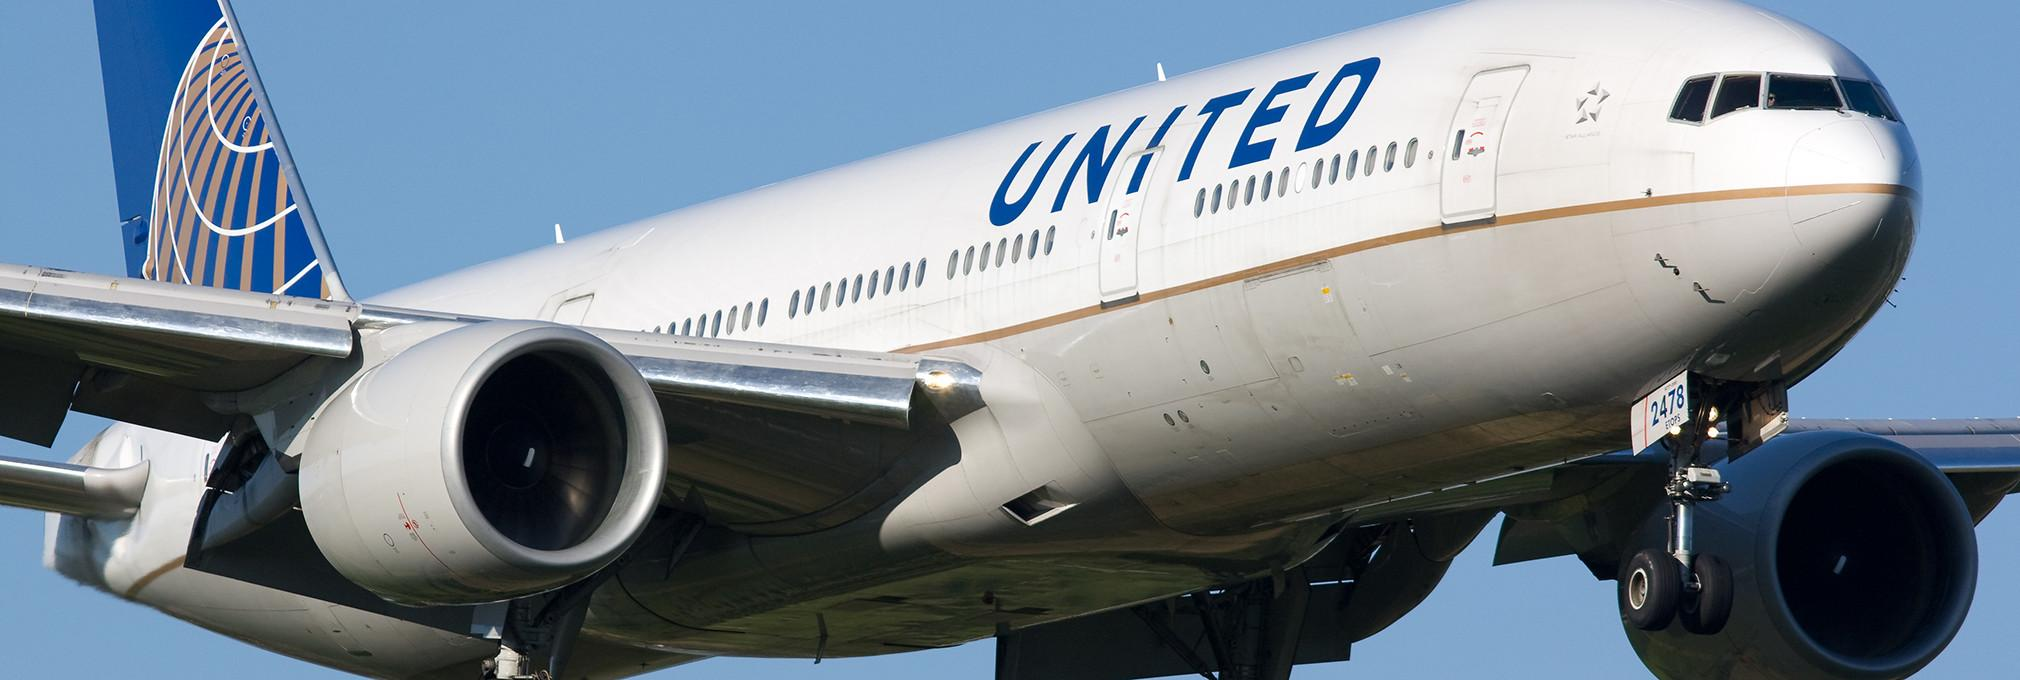 united airlines restricts women came wearing leggings